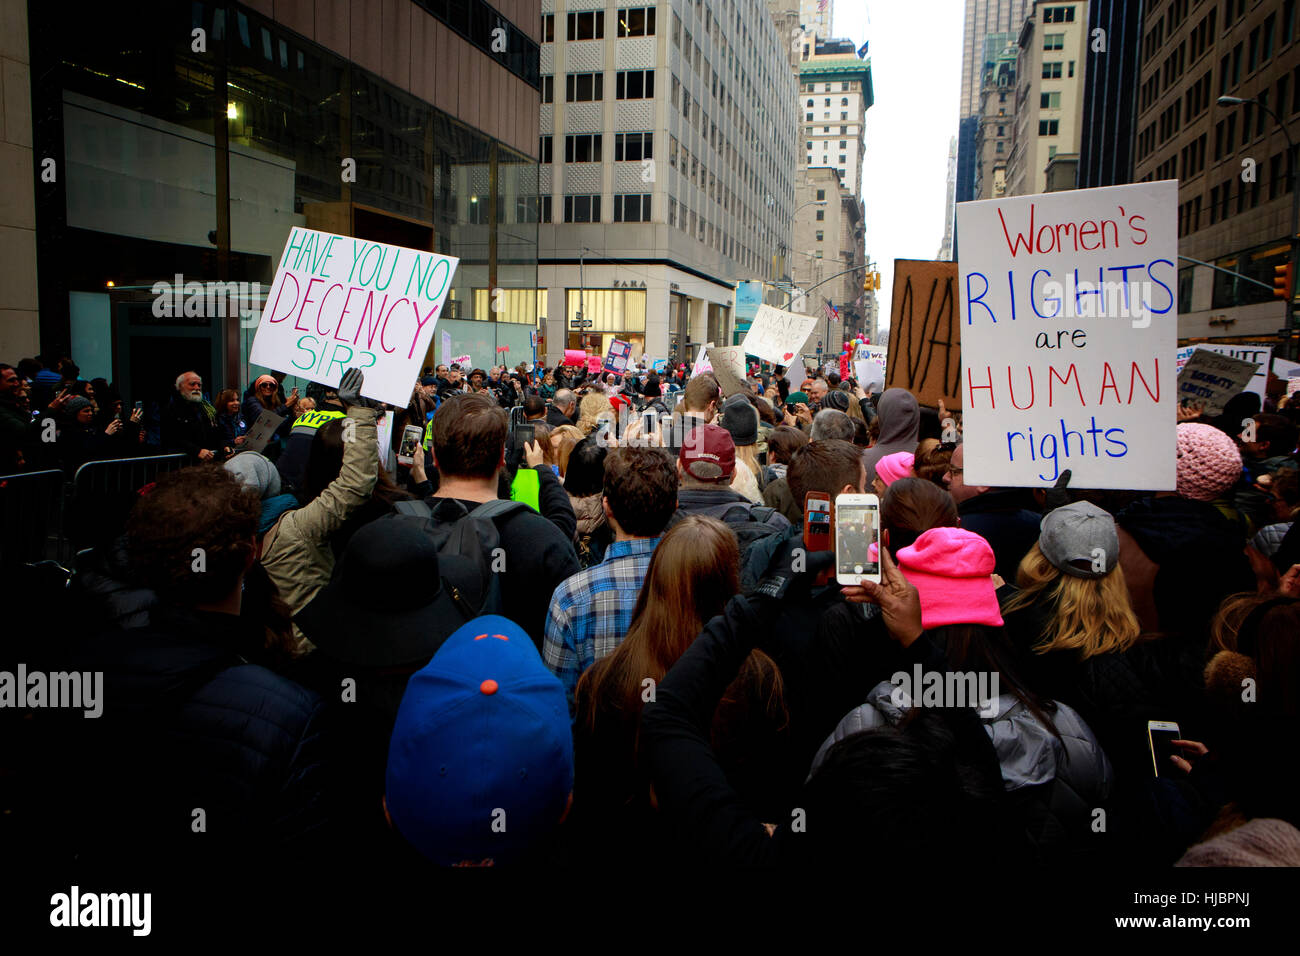 Protester's at the NYC Women's March - Stock Image